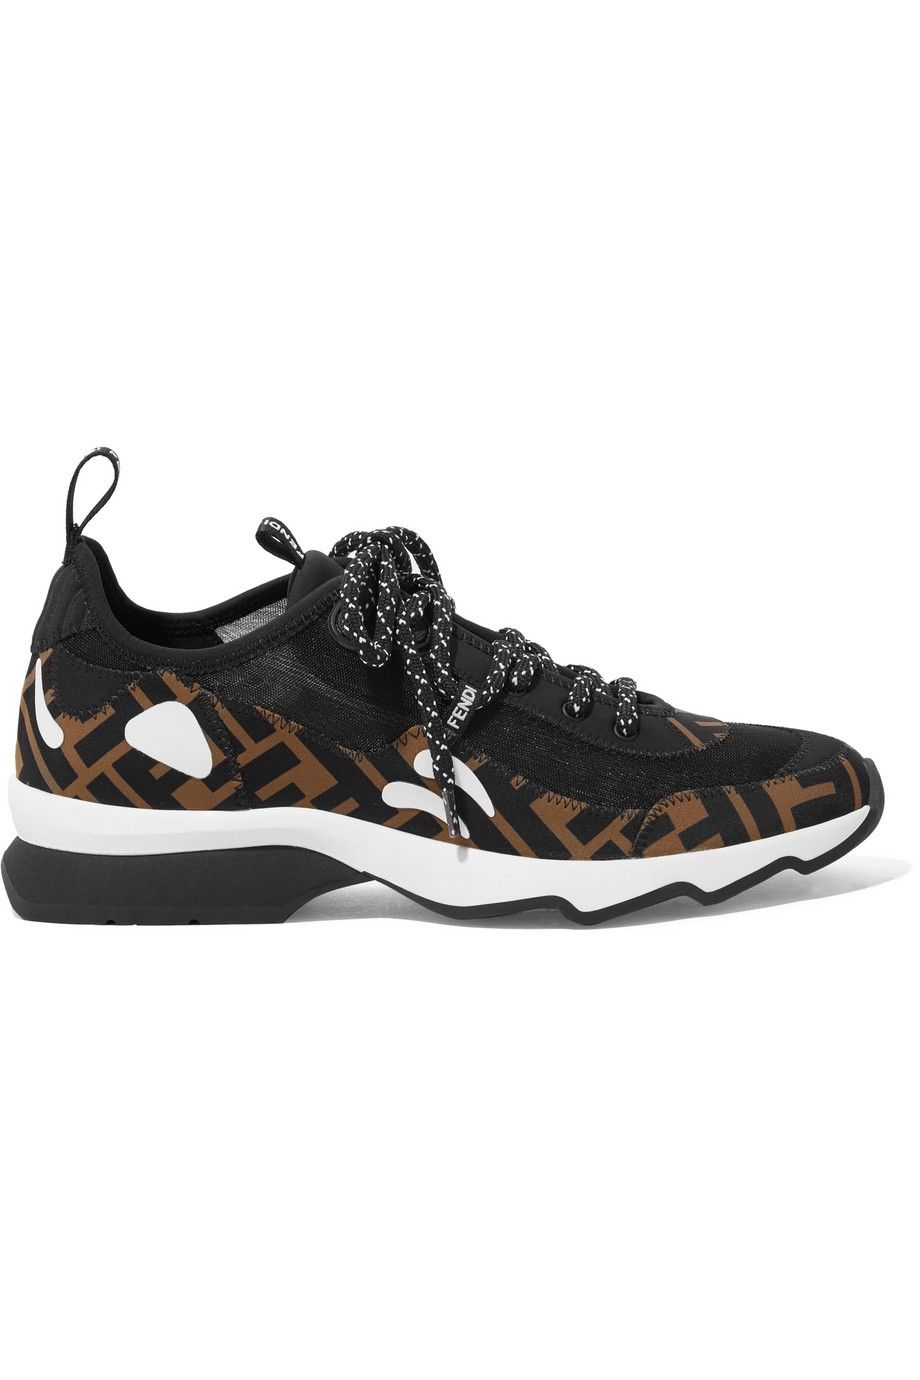 Logo-Print Appliquéd Neoprene and Mesh Sneakers Fendi net-a-porter.com $790.00 SHOP NOW The logo on this looks almost leopard like, meaning it matches with everything.